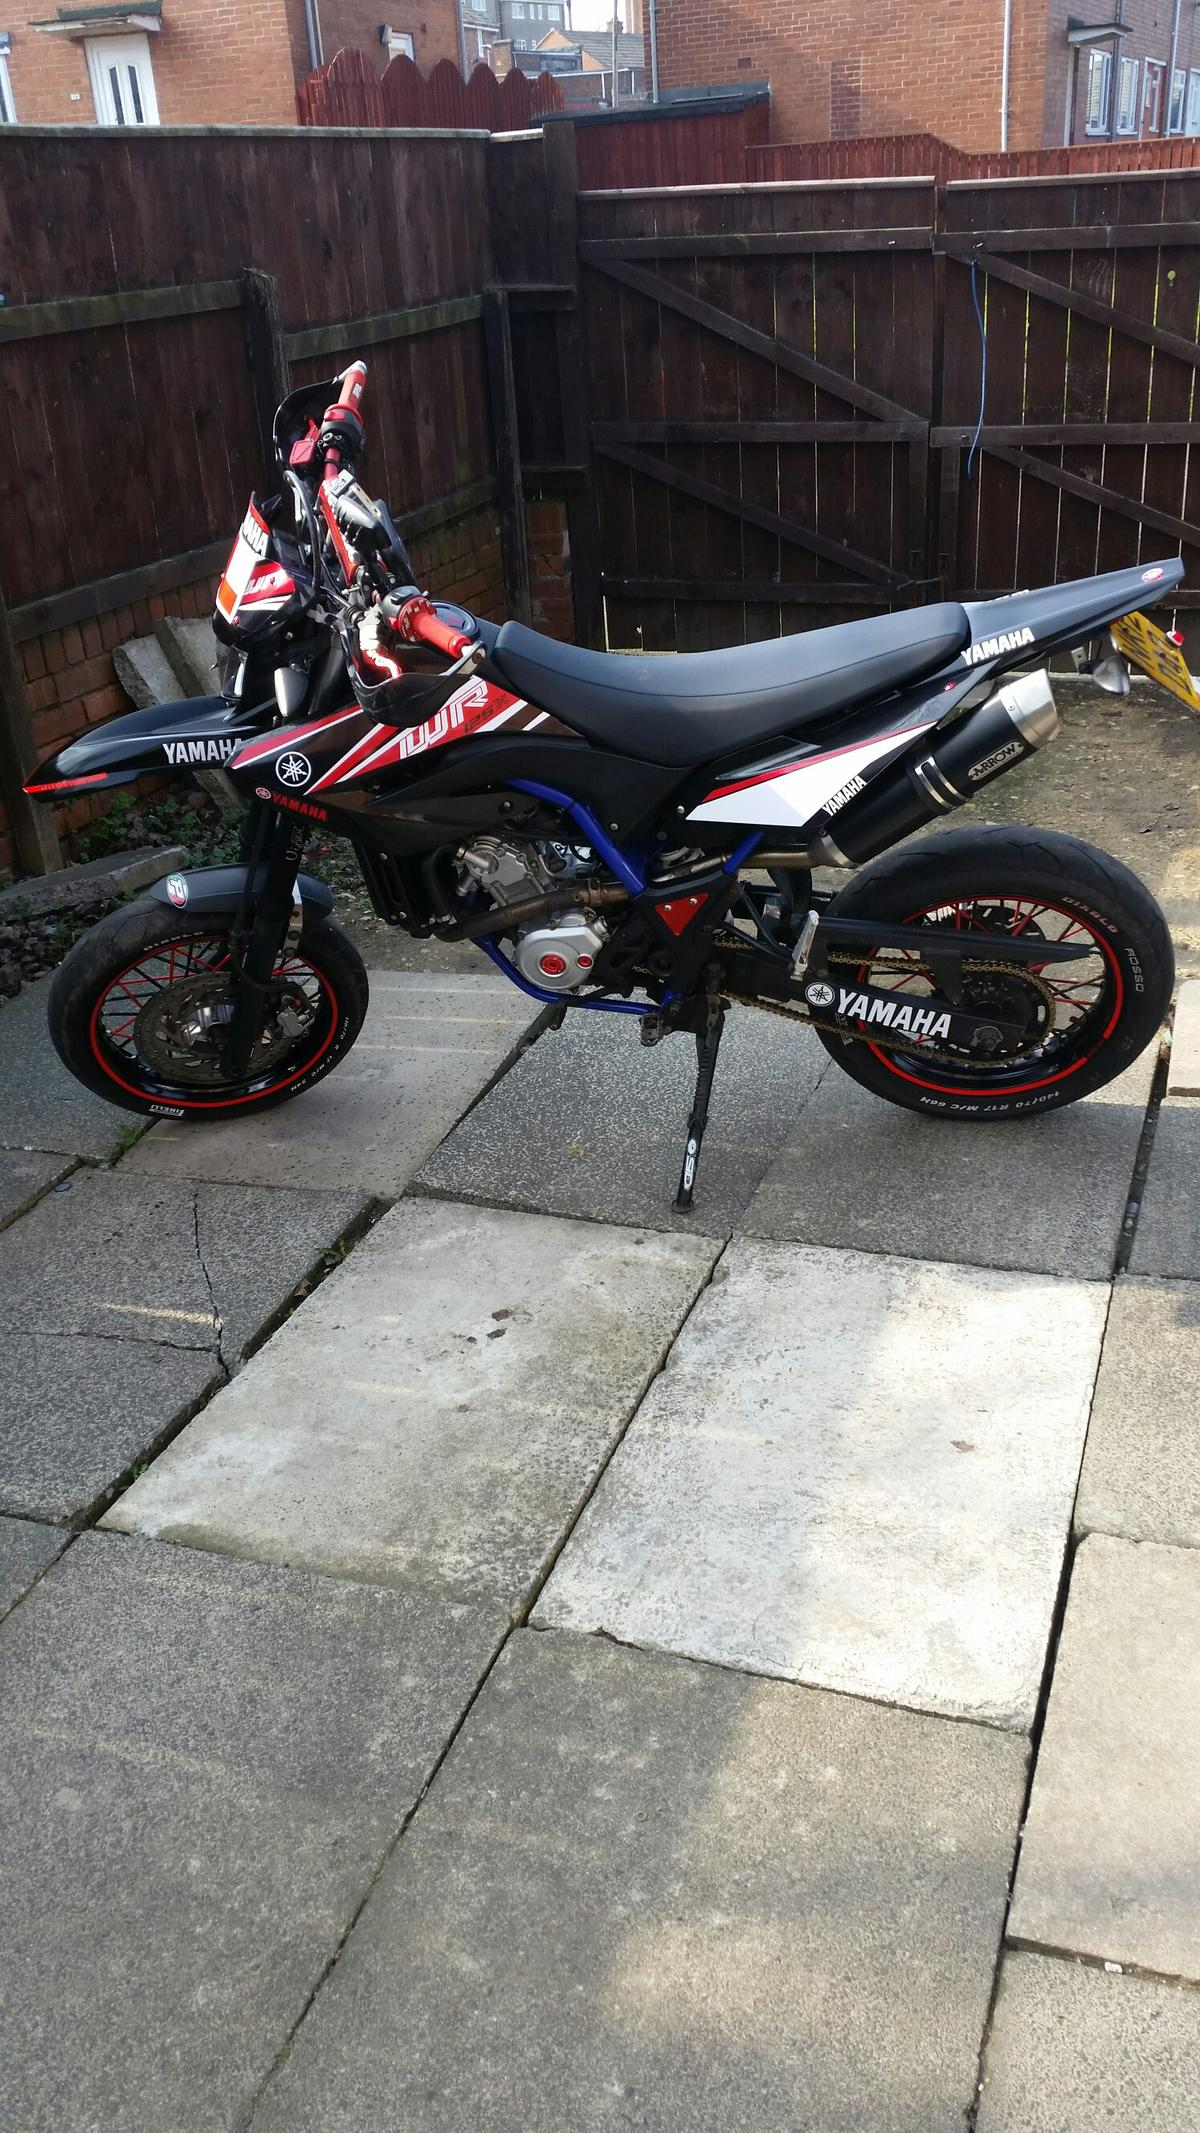 2012 yamaha wr125x in Gateshead for £1,950 00 for sale - Shpock